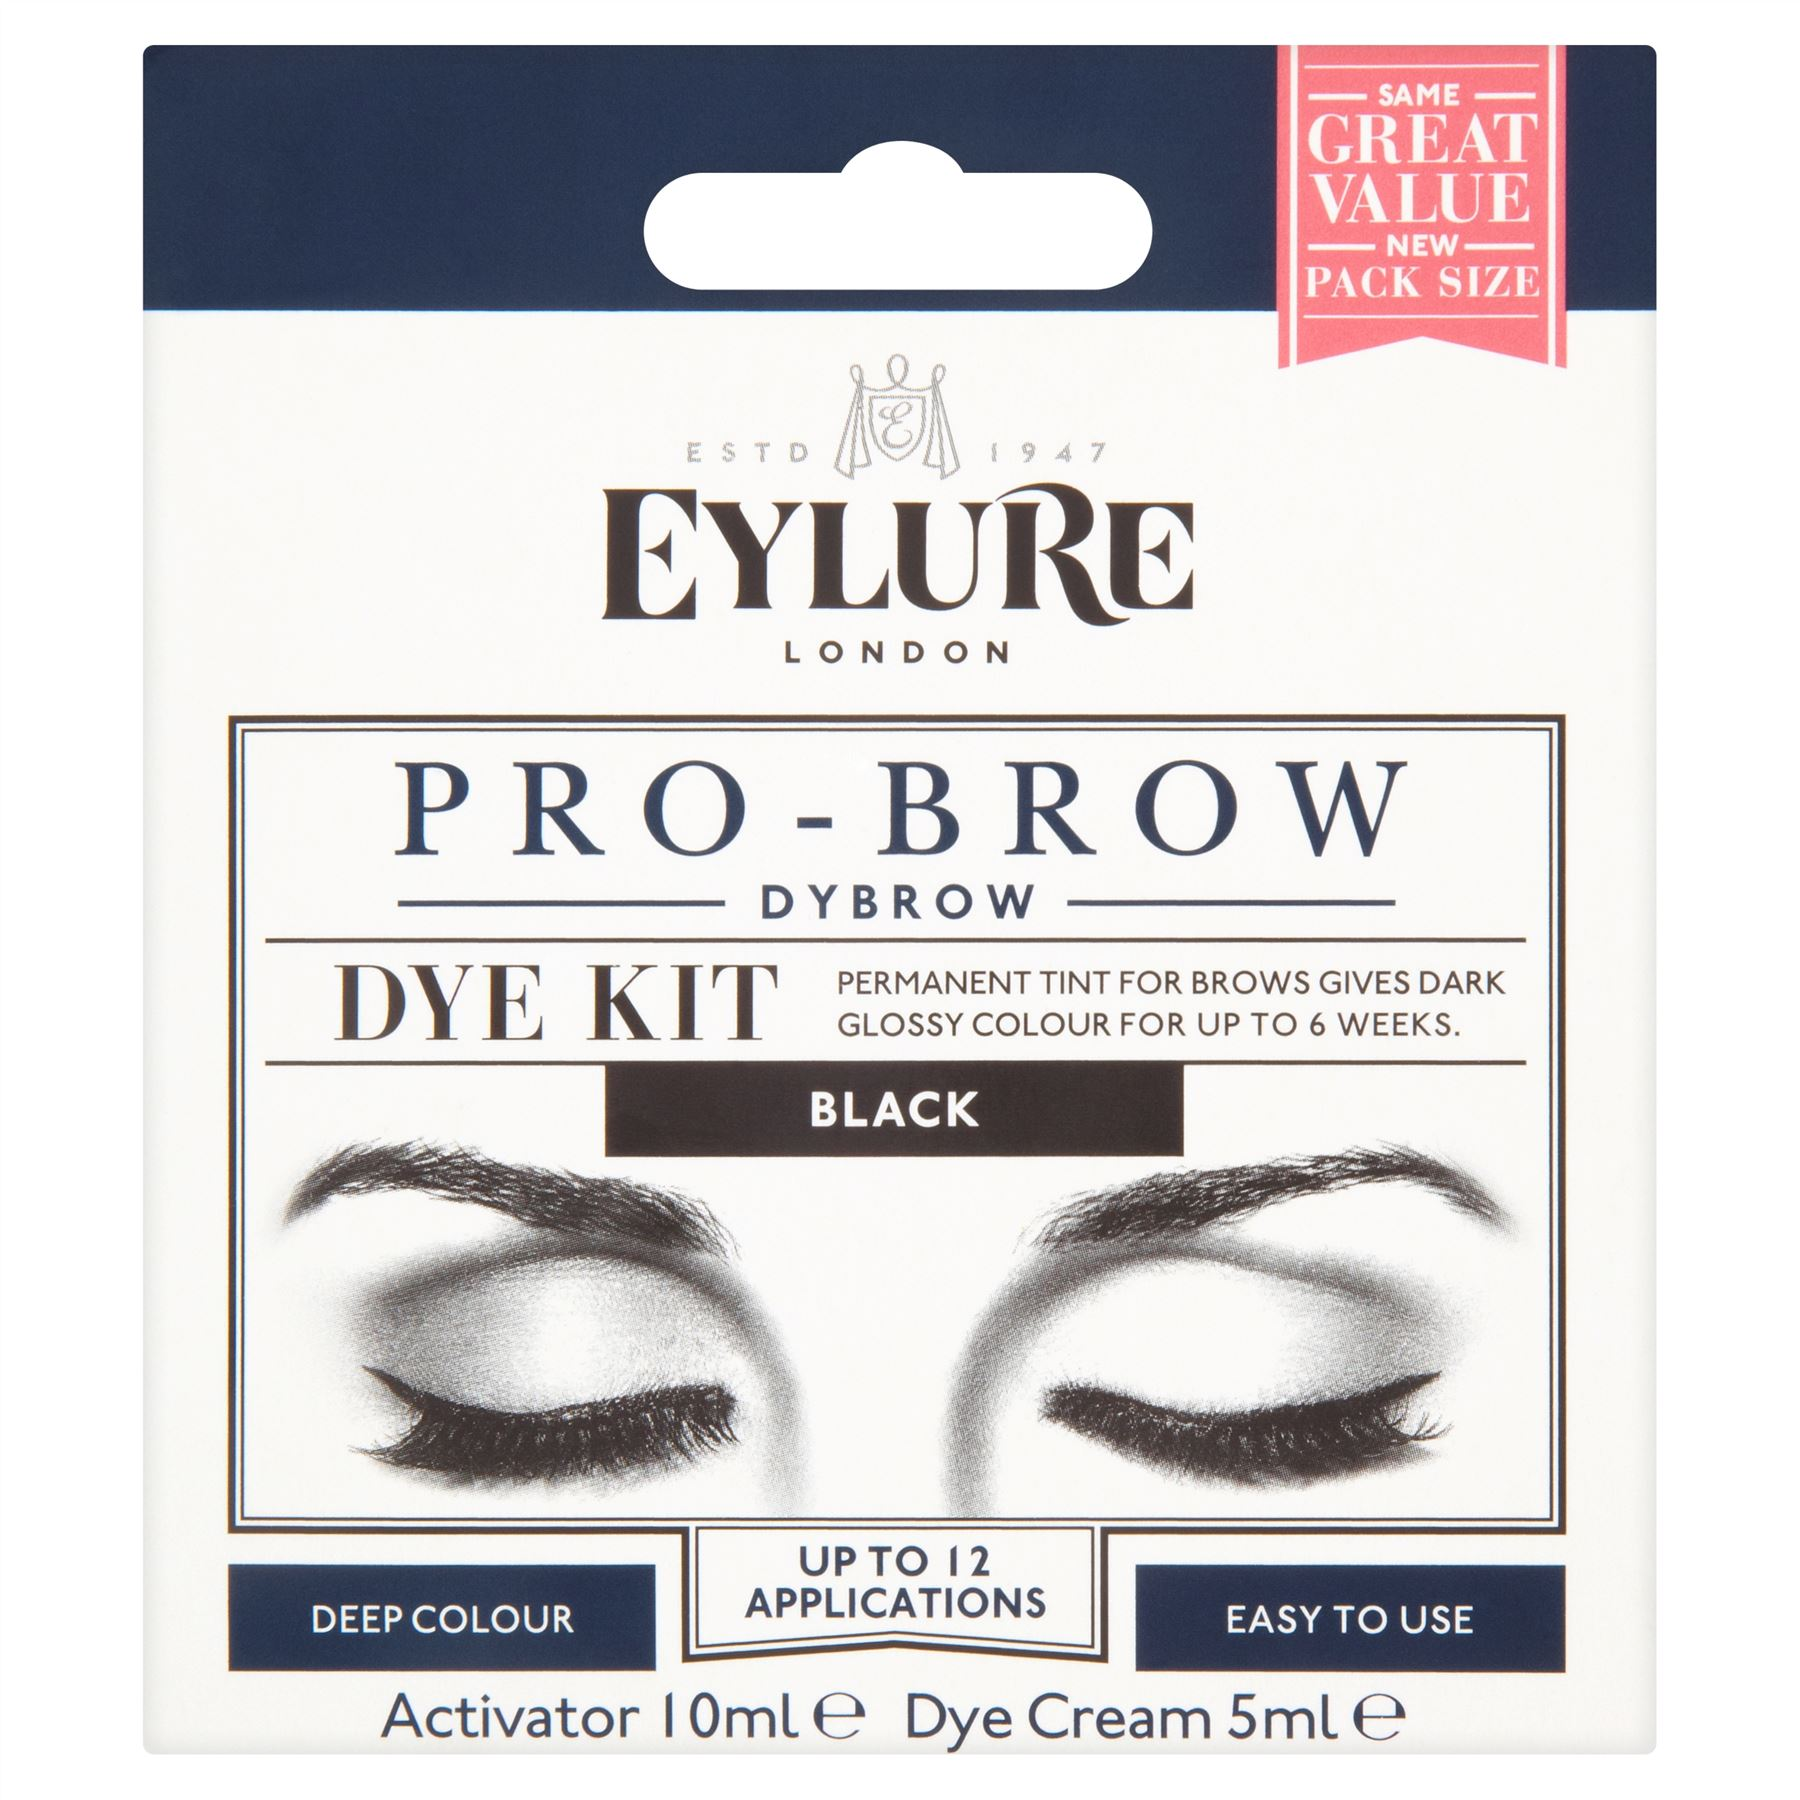 264b92b5e30 Eylure Dybrow | Dark Brown & Black Eyebrow Dye Kit (Previously ...